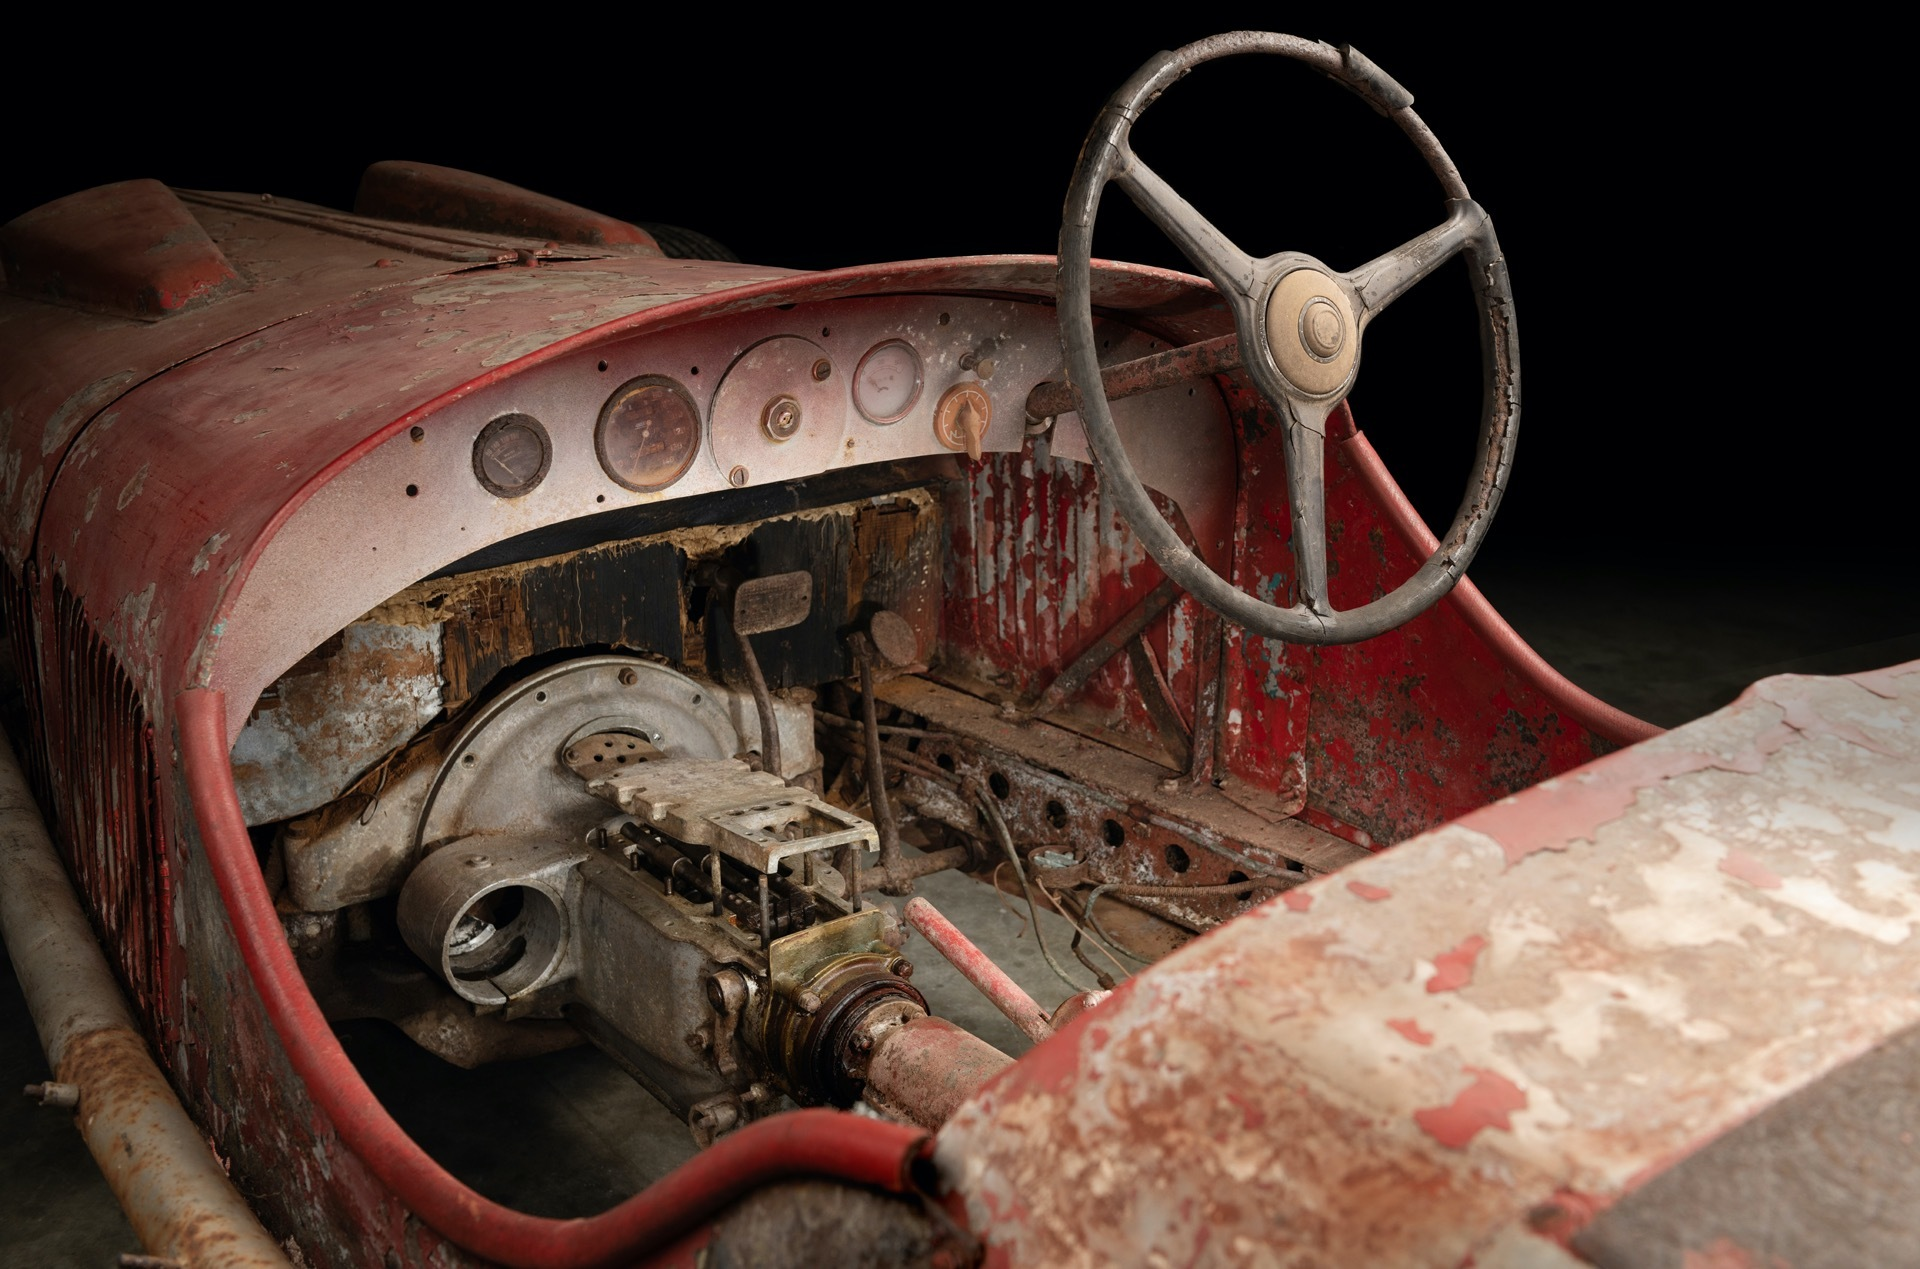 The British restoration shop will attempt to rebuild the nonagenarian roadster that once belonged to Benito Mussolini himself.